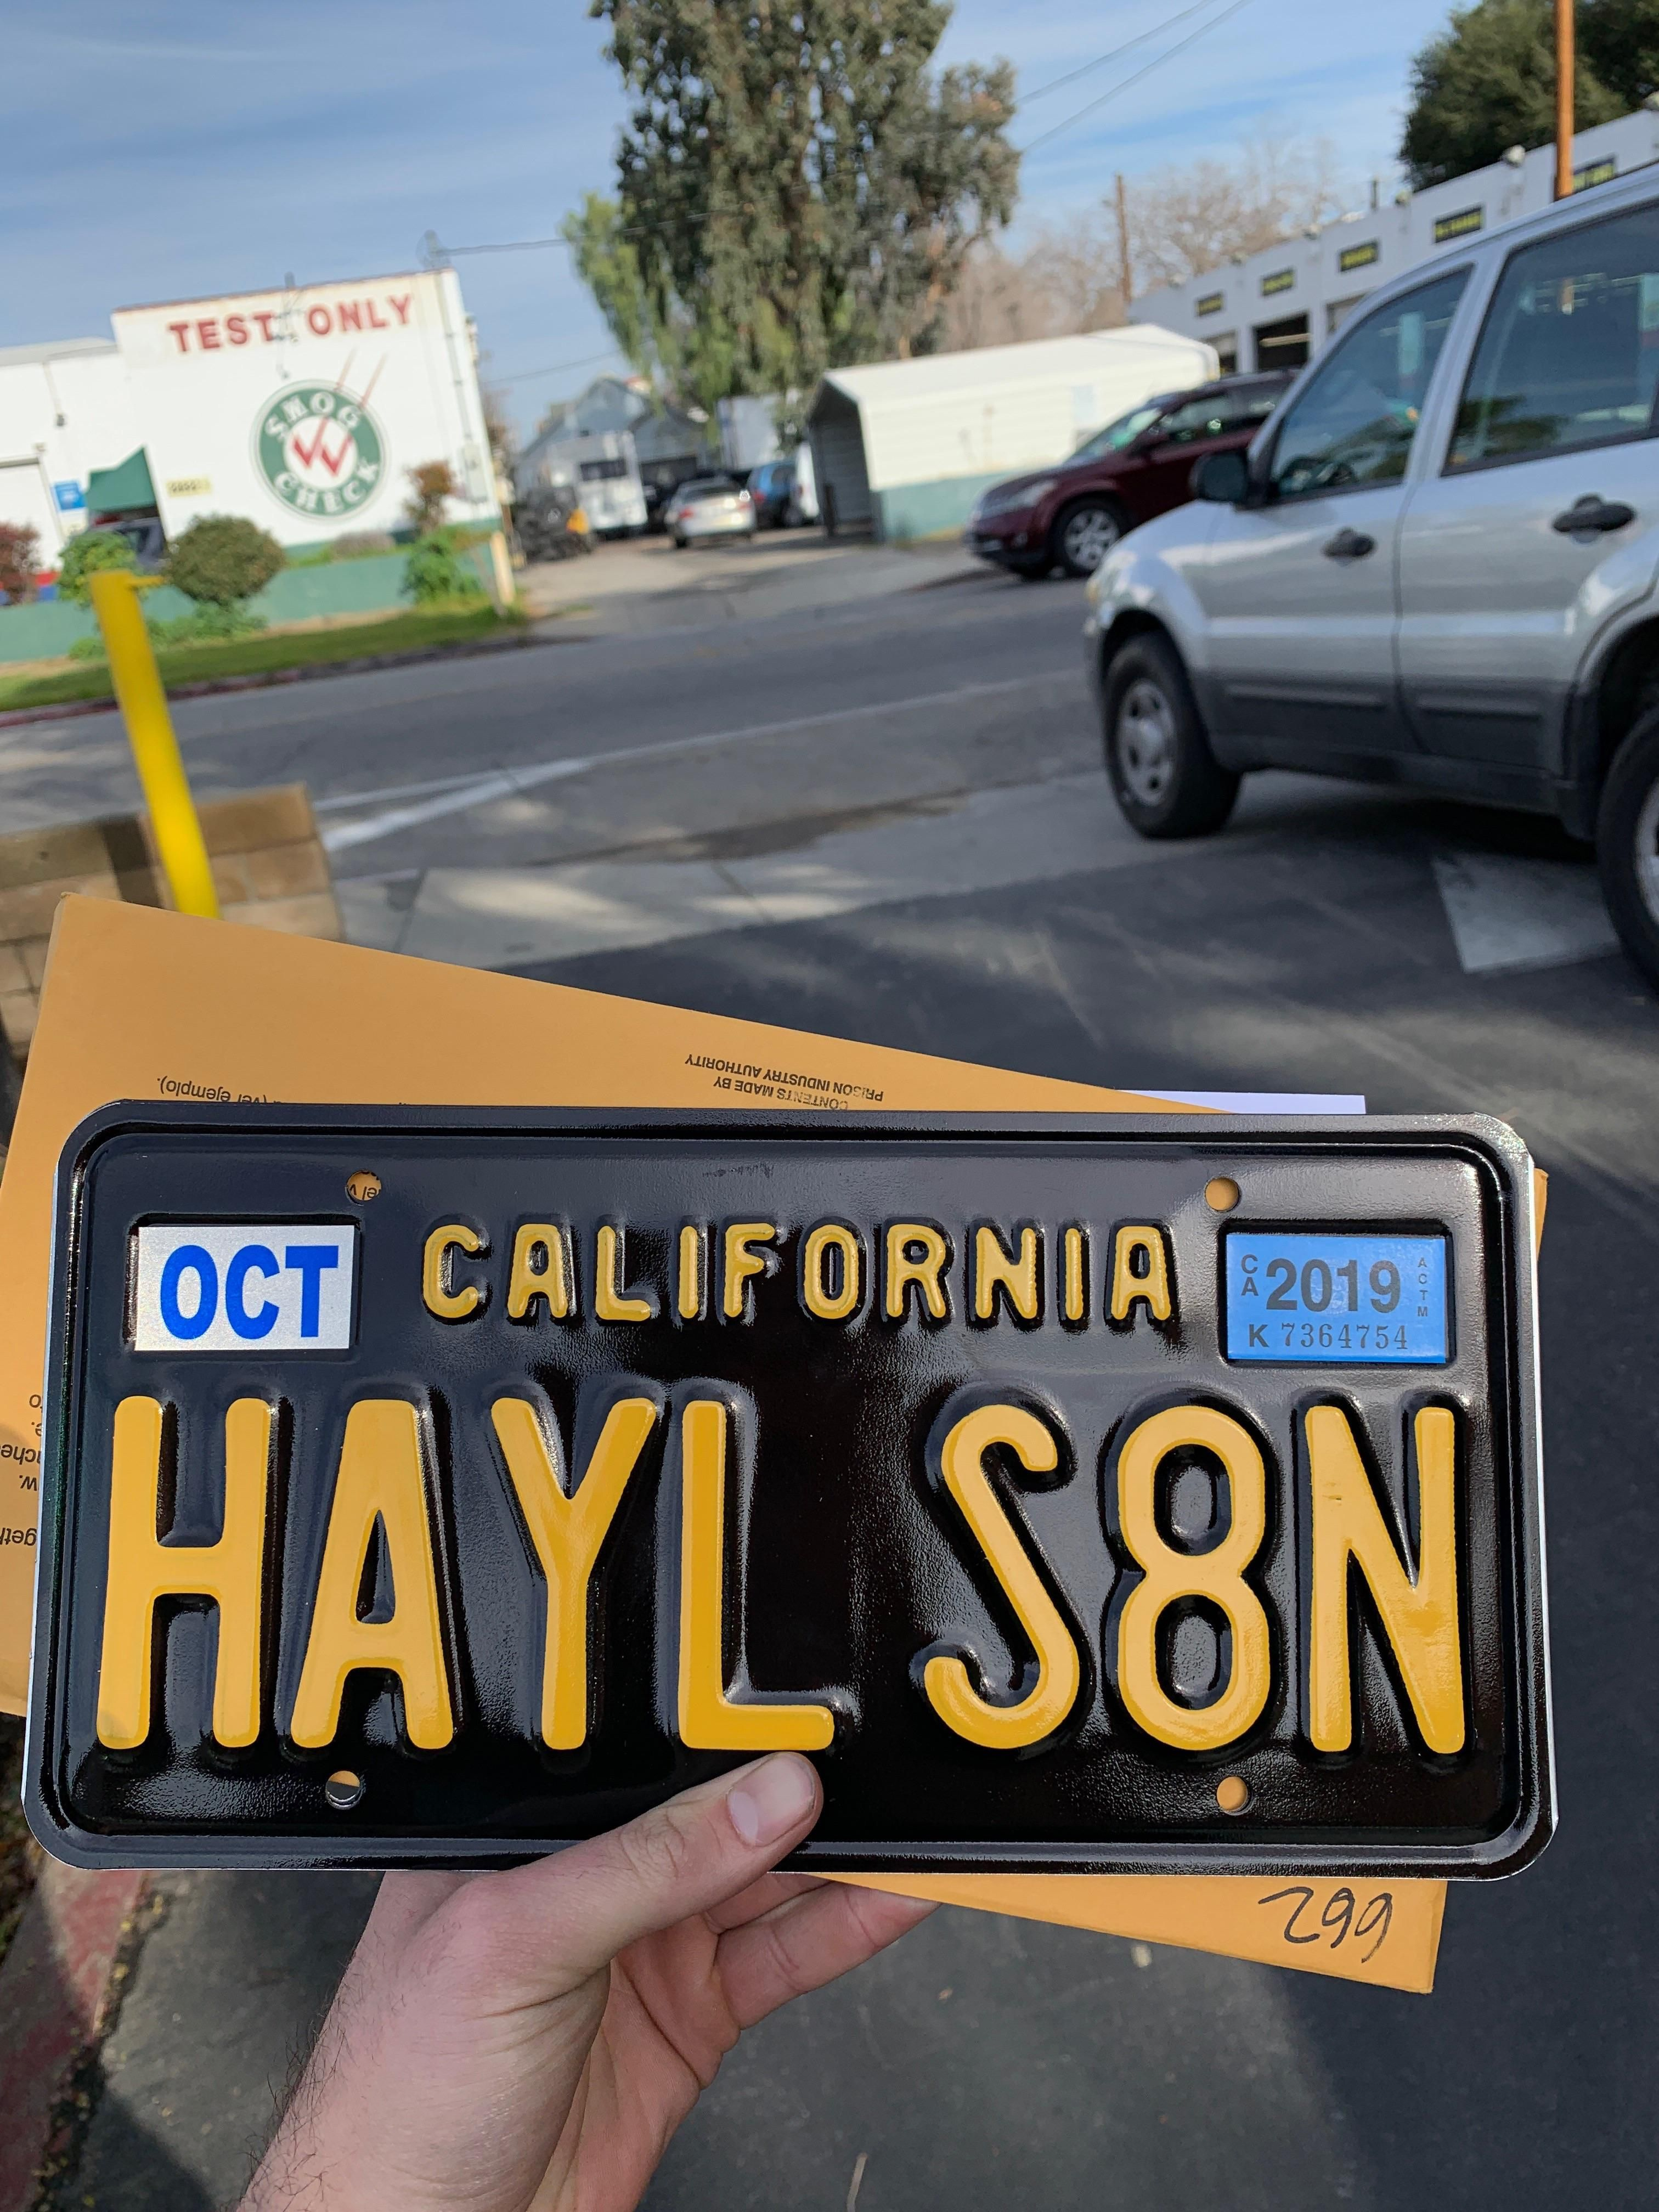 Buddy of mine just picked up his license plate, no he's not serious.